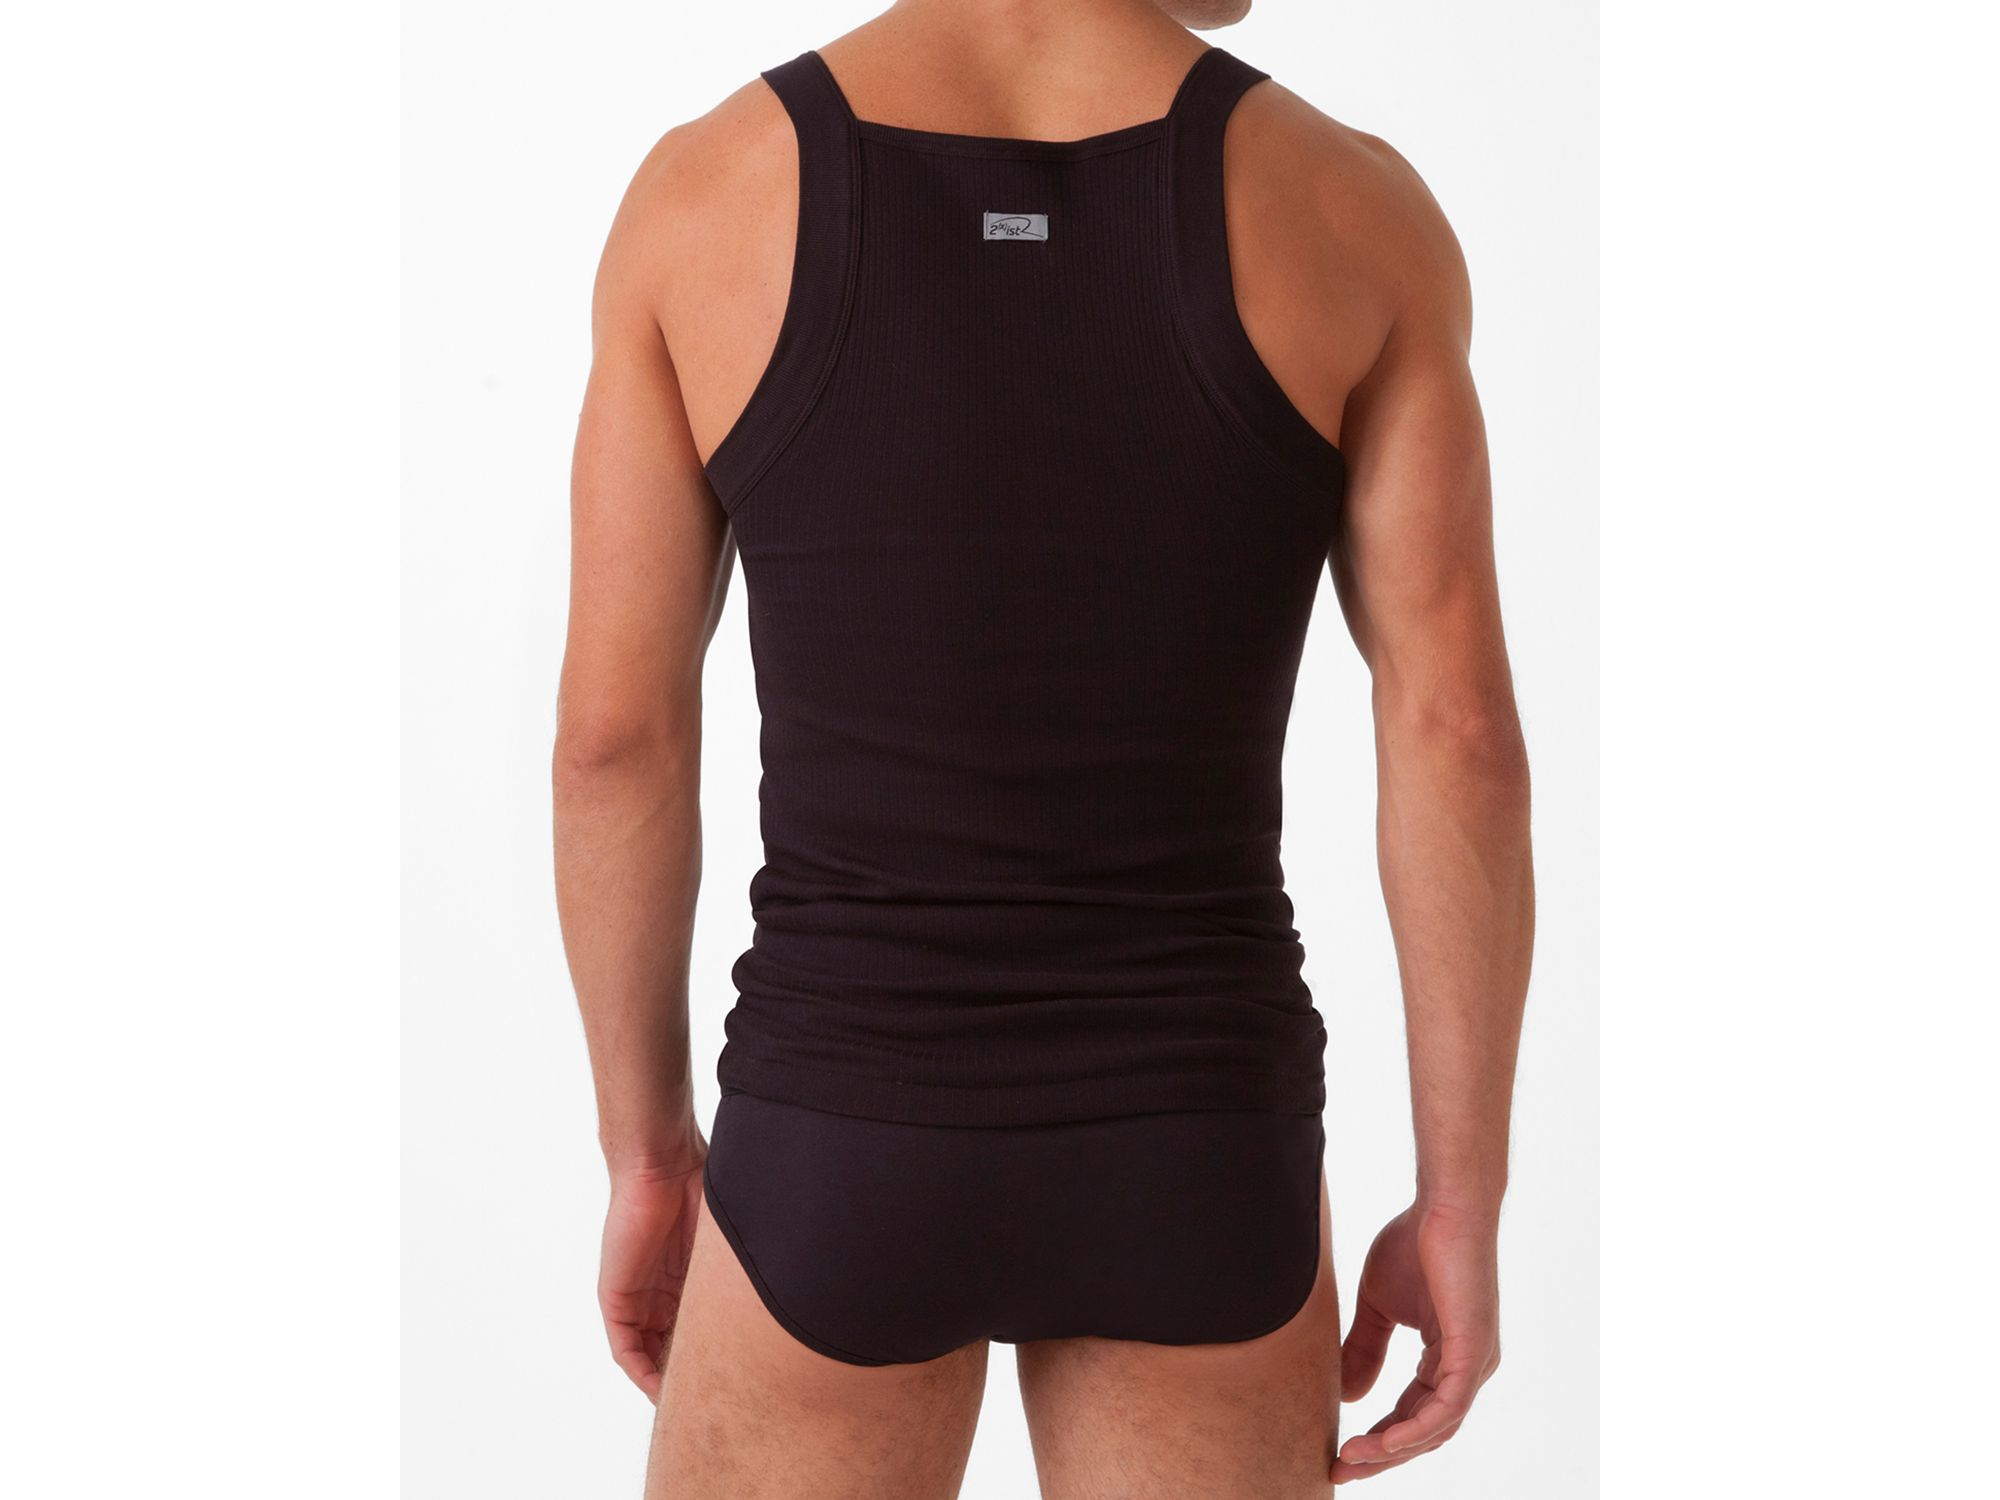 e834be49150287 2xist 2(x)ist Form Square Cut Tank Top in Black for Men - Lyst